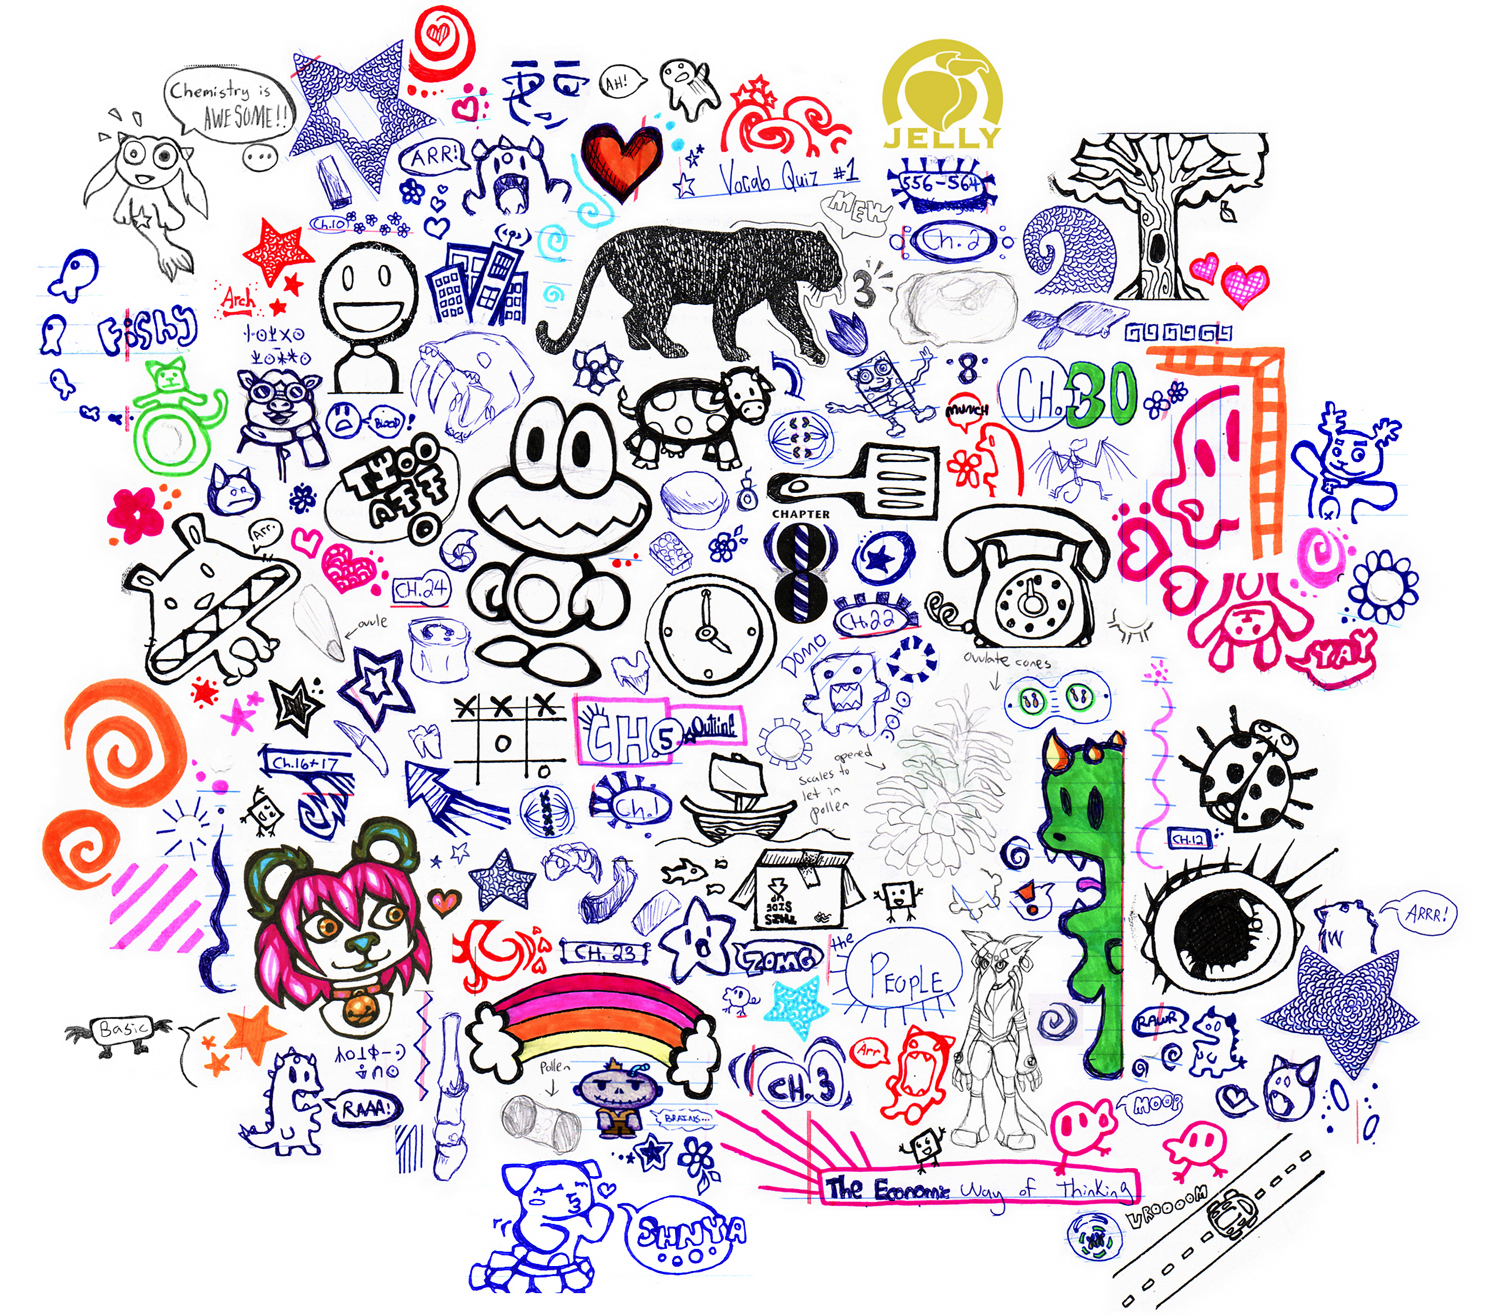 doodles margin doodle cute peach jelly random quotes drawing brain draw effects deviantart quotesgram memory sketchbook collages suggest exist consistently